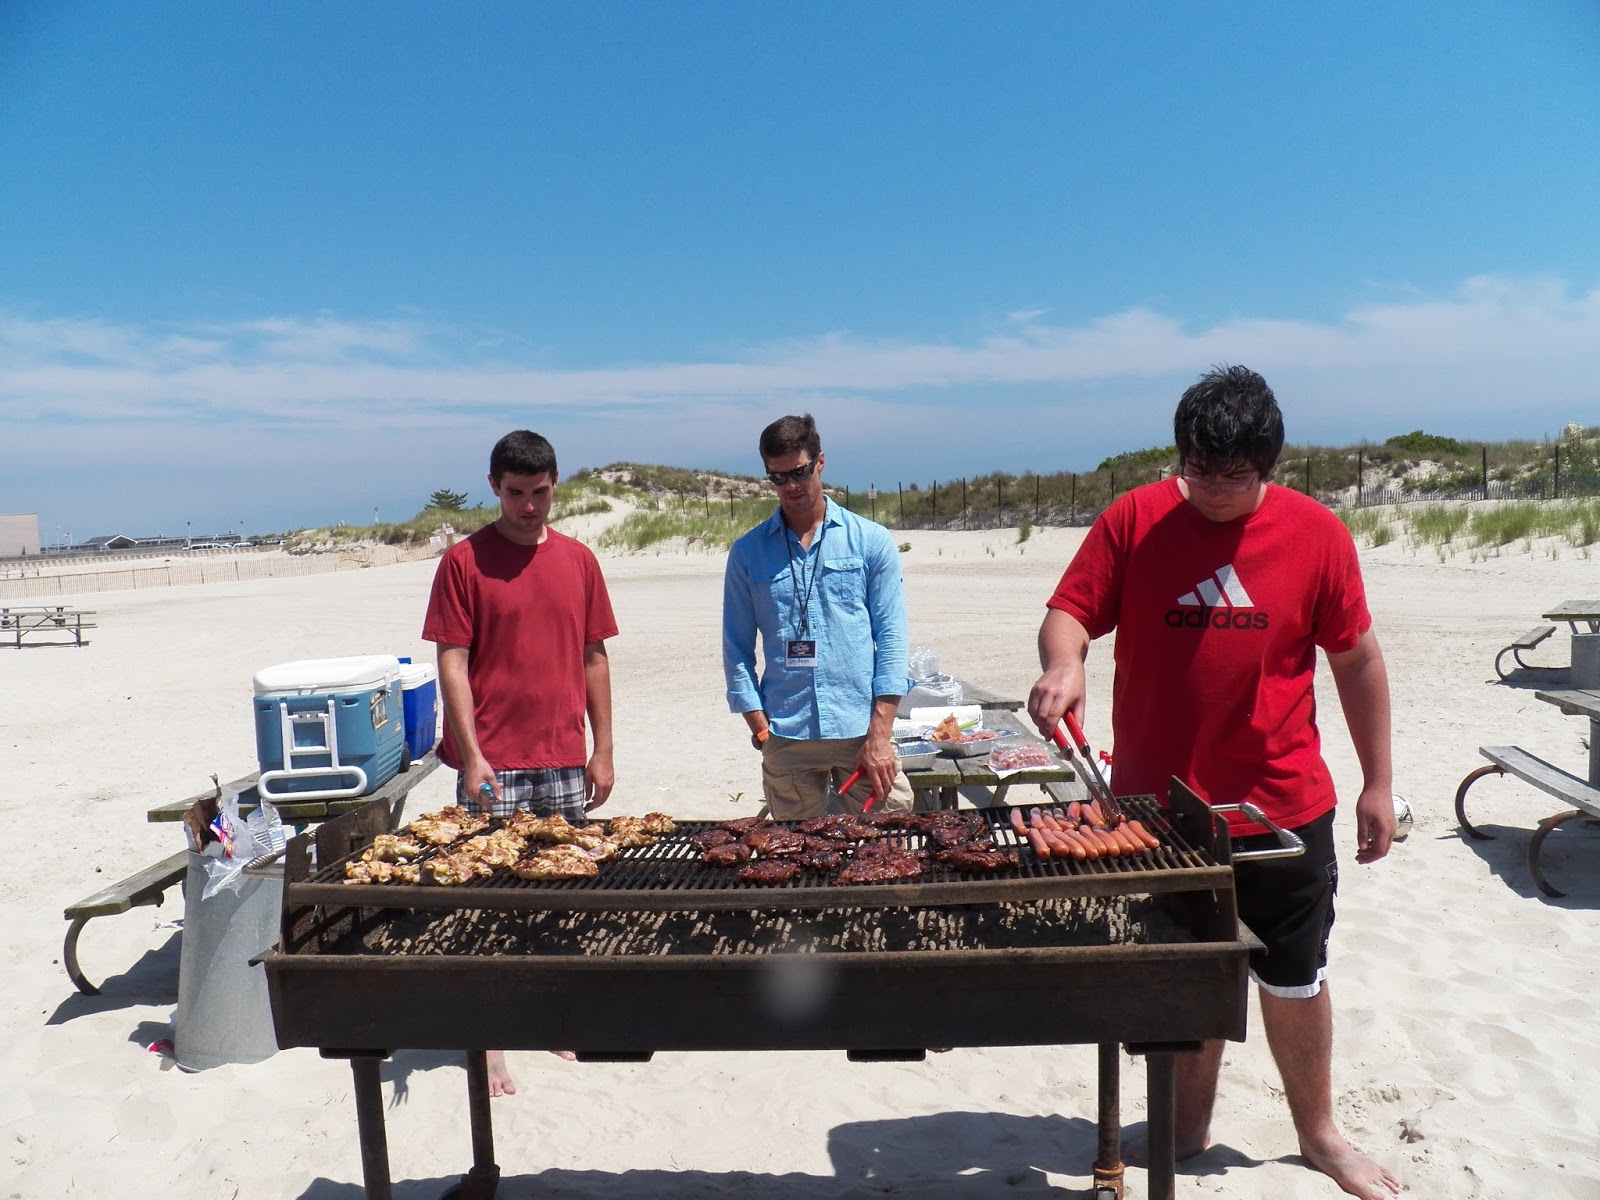 You Can T Have A Bbq Without Hot Y Men Running The Grill Guys Were Awesome Cooks